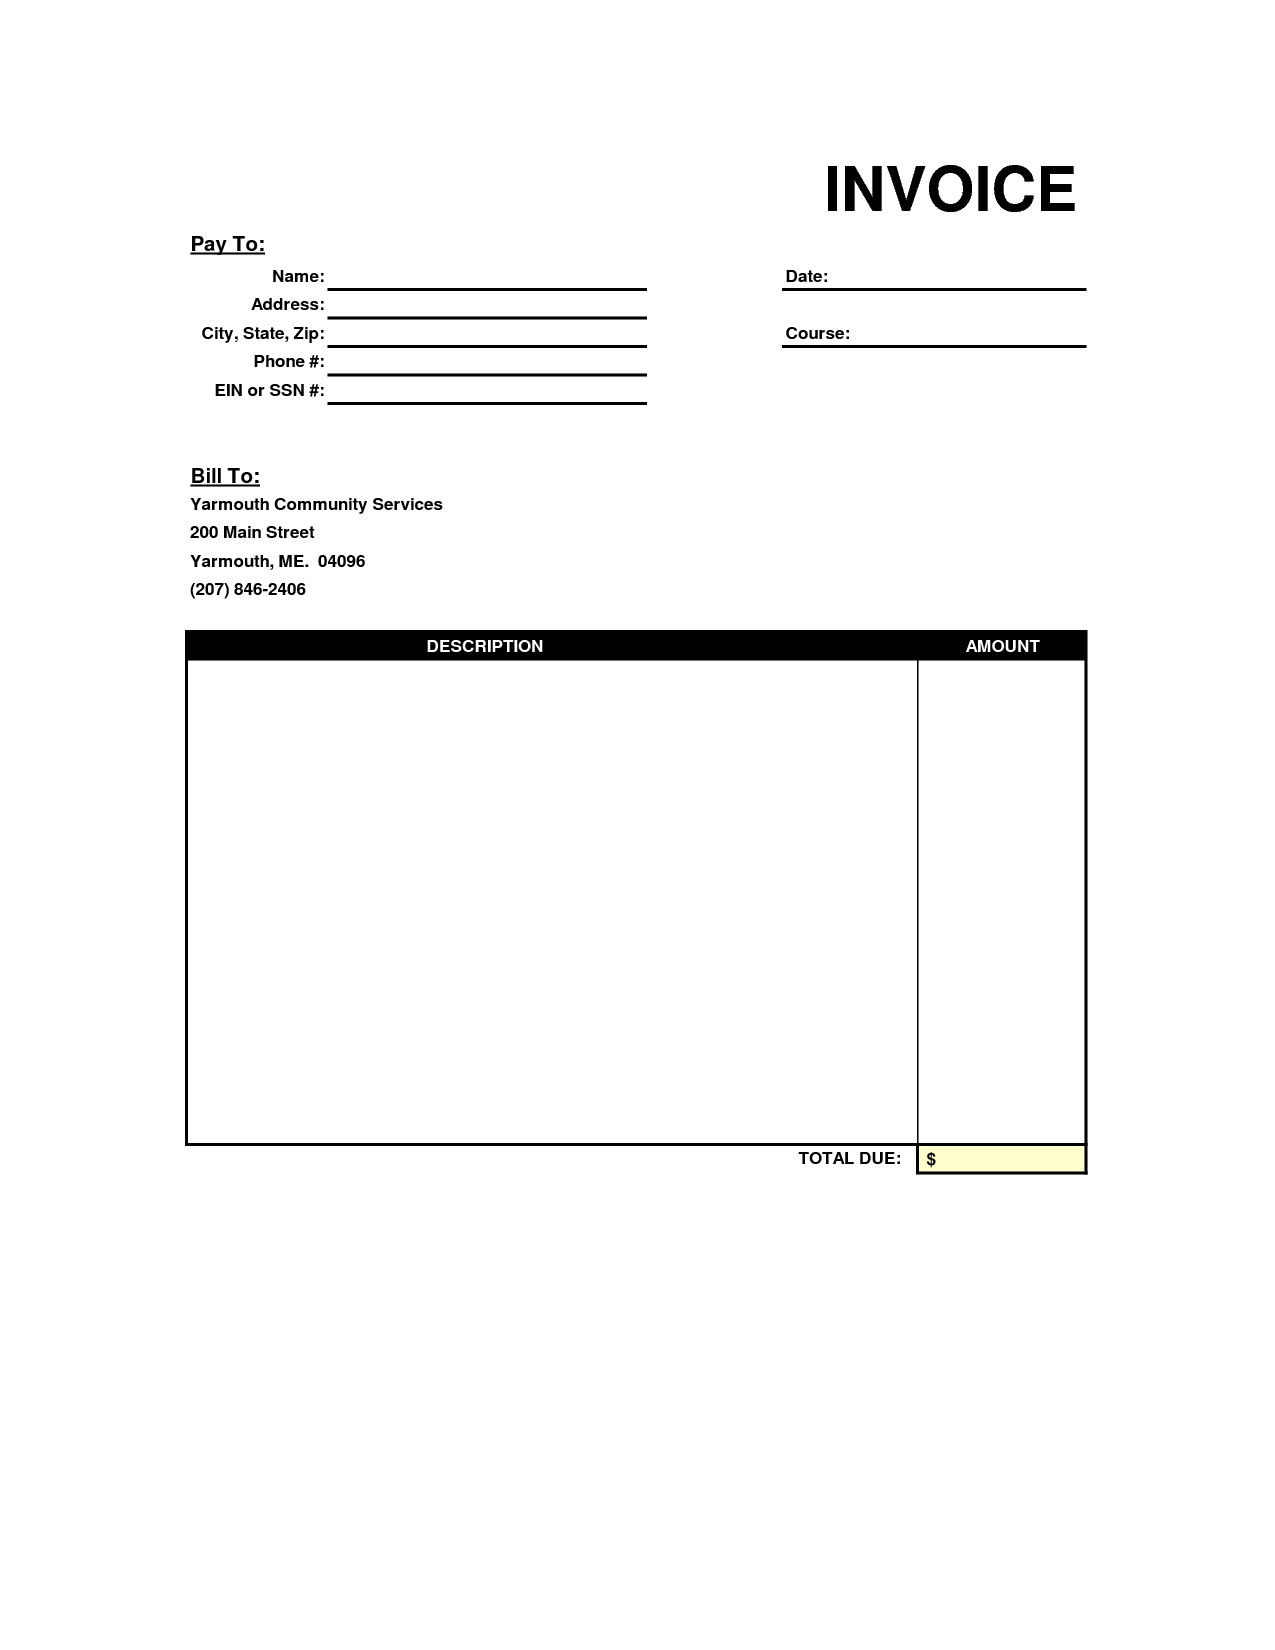 Invoice Receipt Template 15 Free Word Excel Pdf Personal Invoice Template Uk Invoice Example